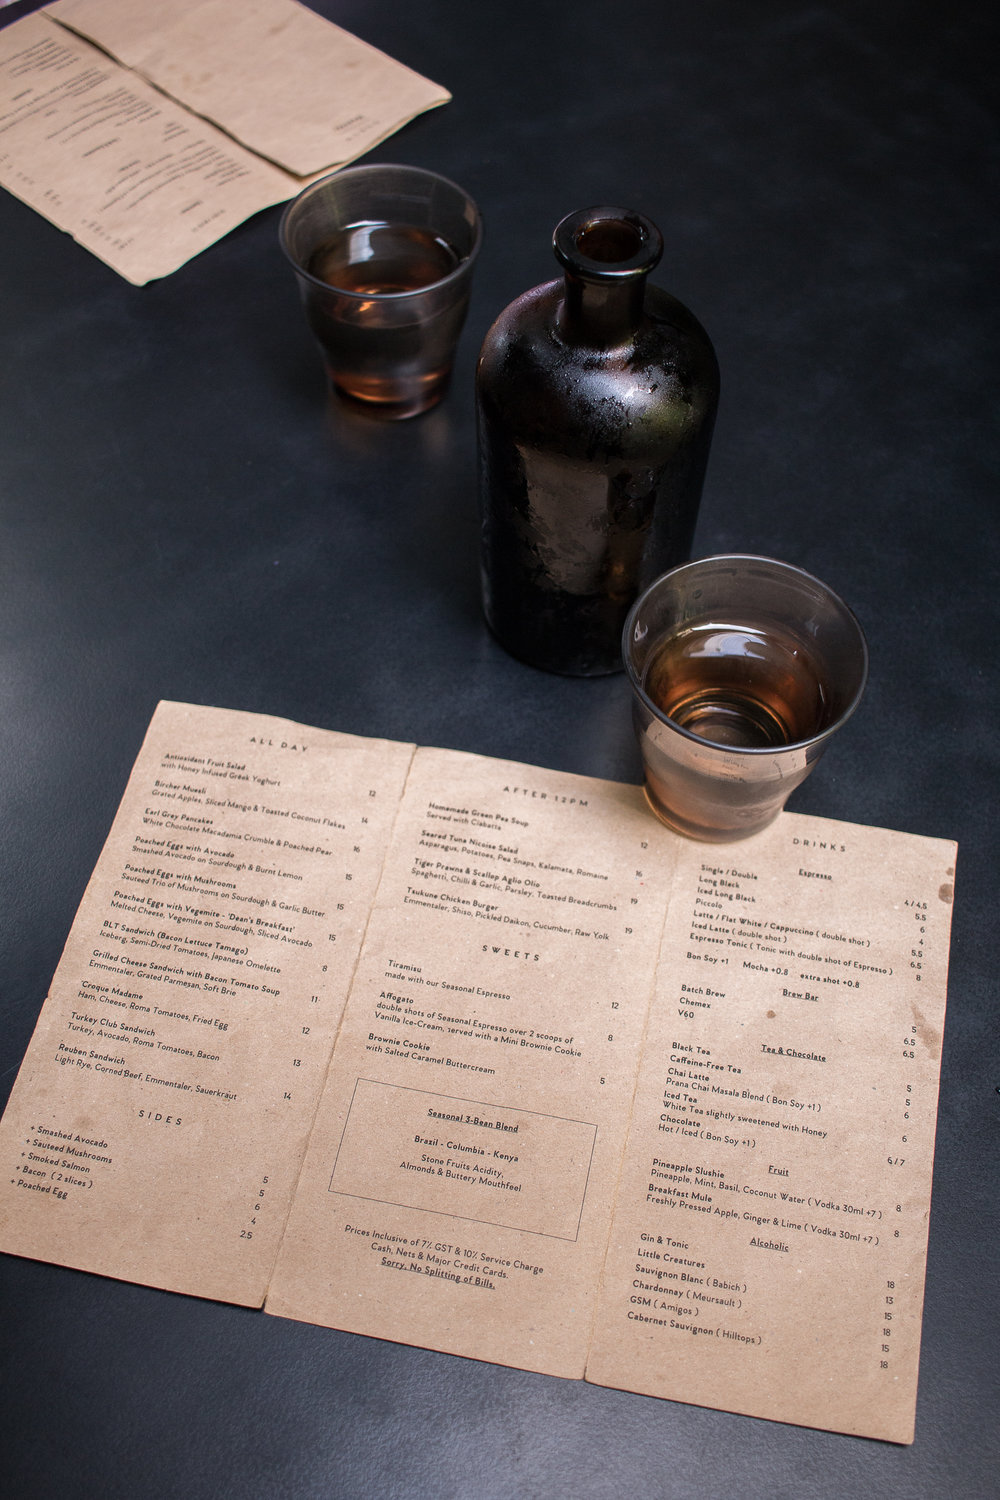 The menu at Punch photographed by Jette Virdi in Singapore